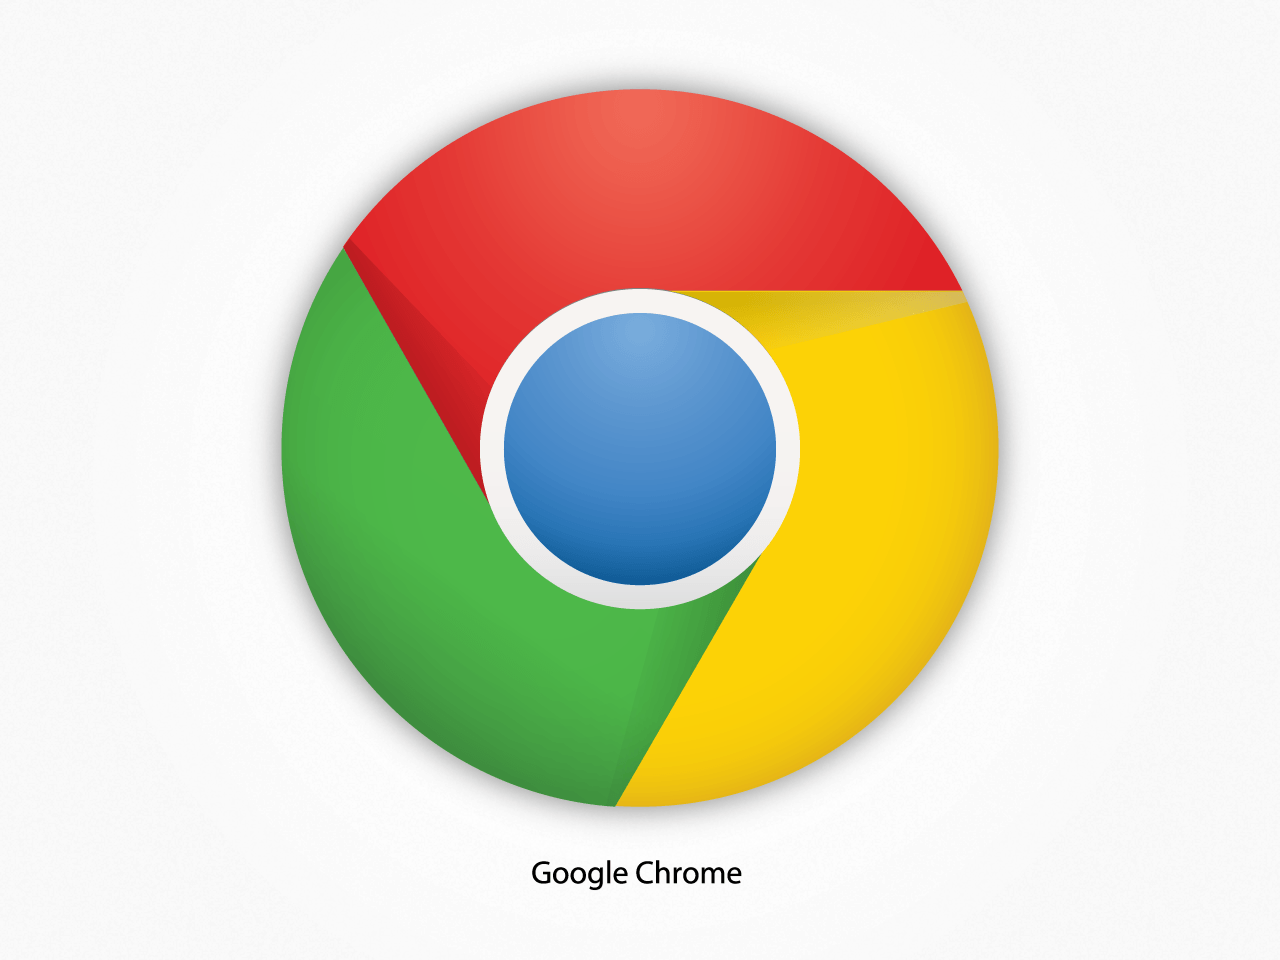 Google Chrome Icon Png image #3128